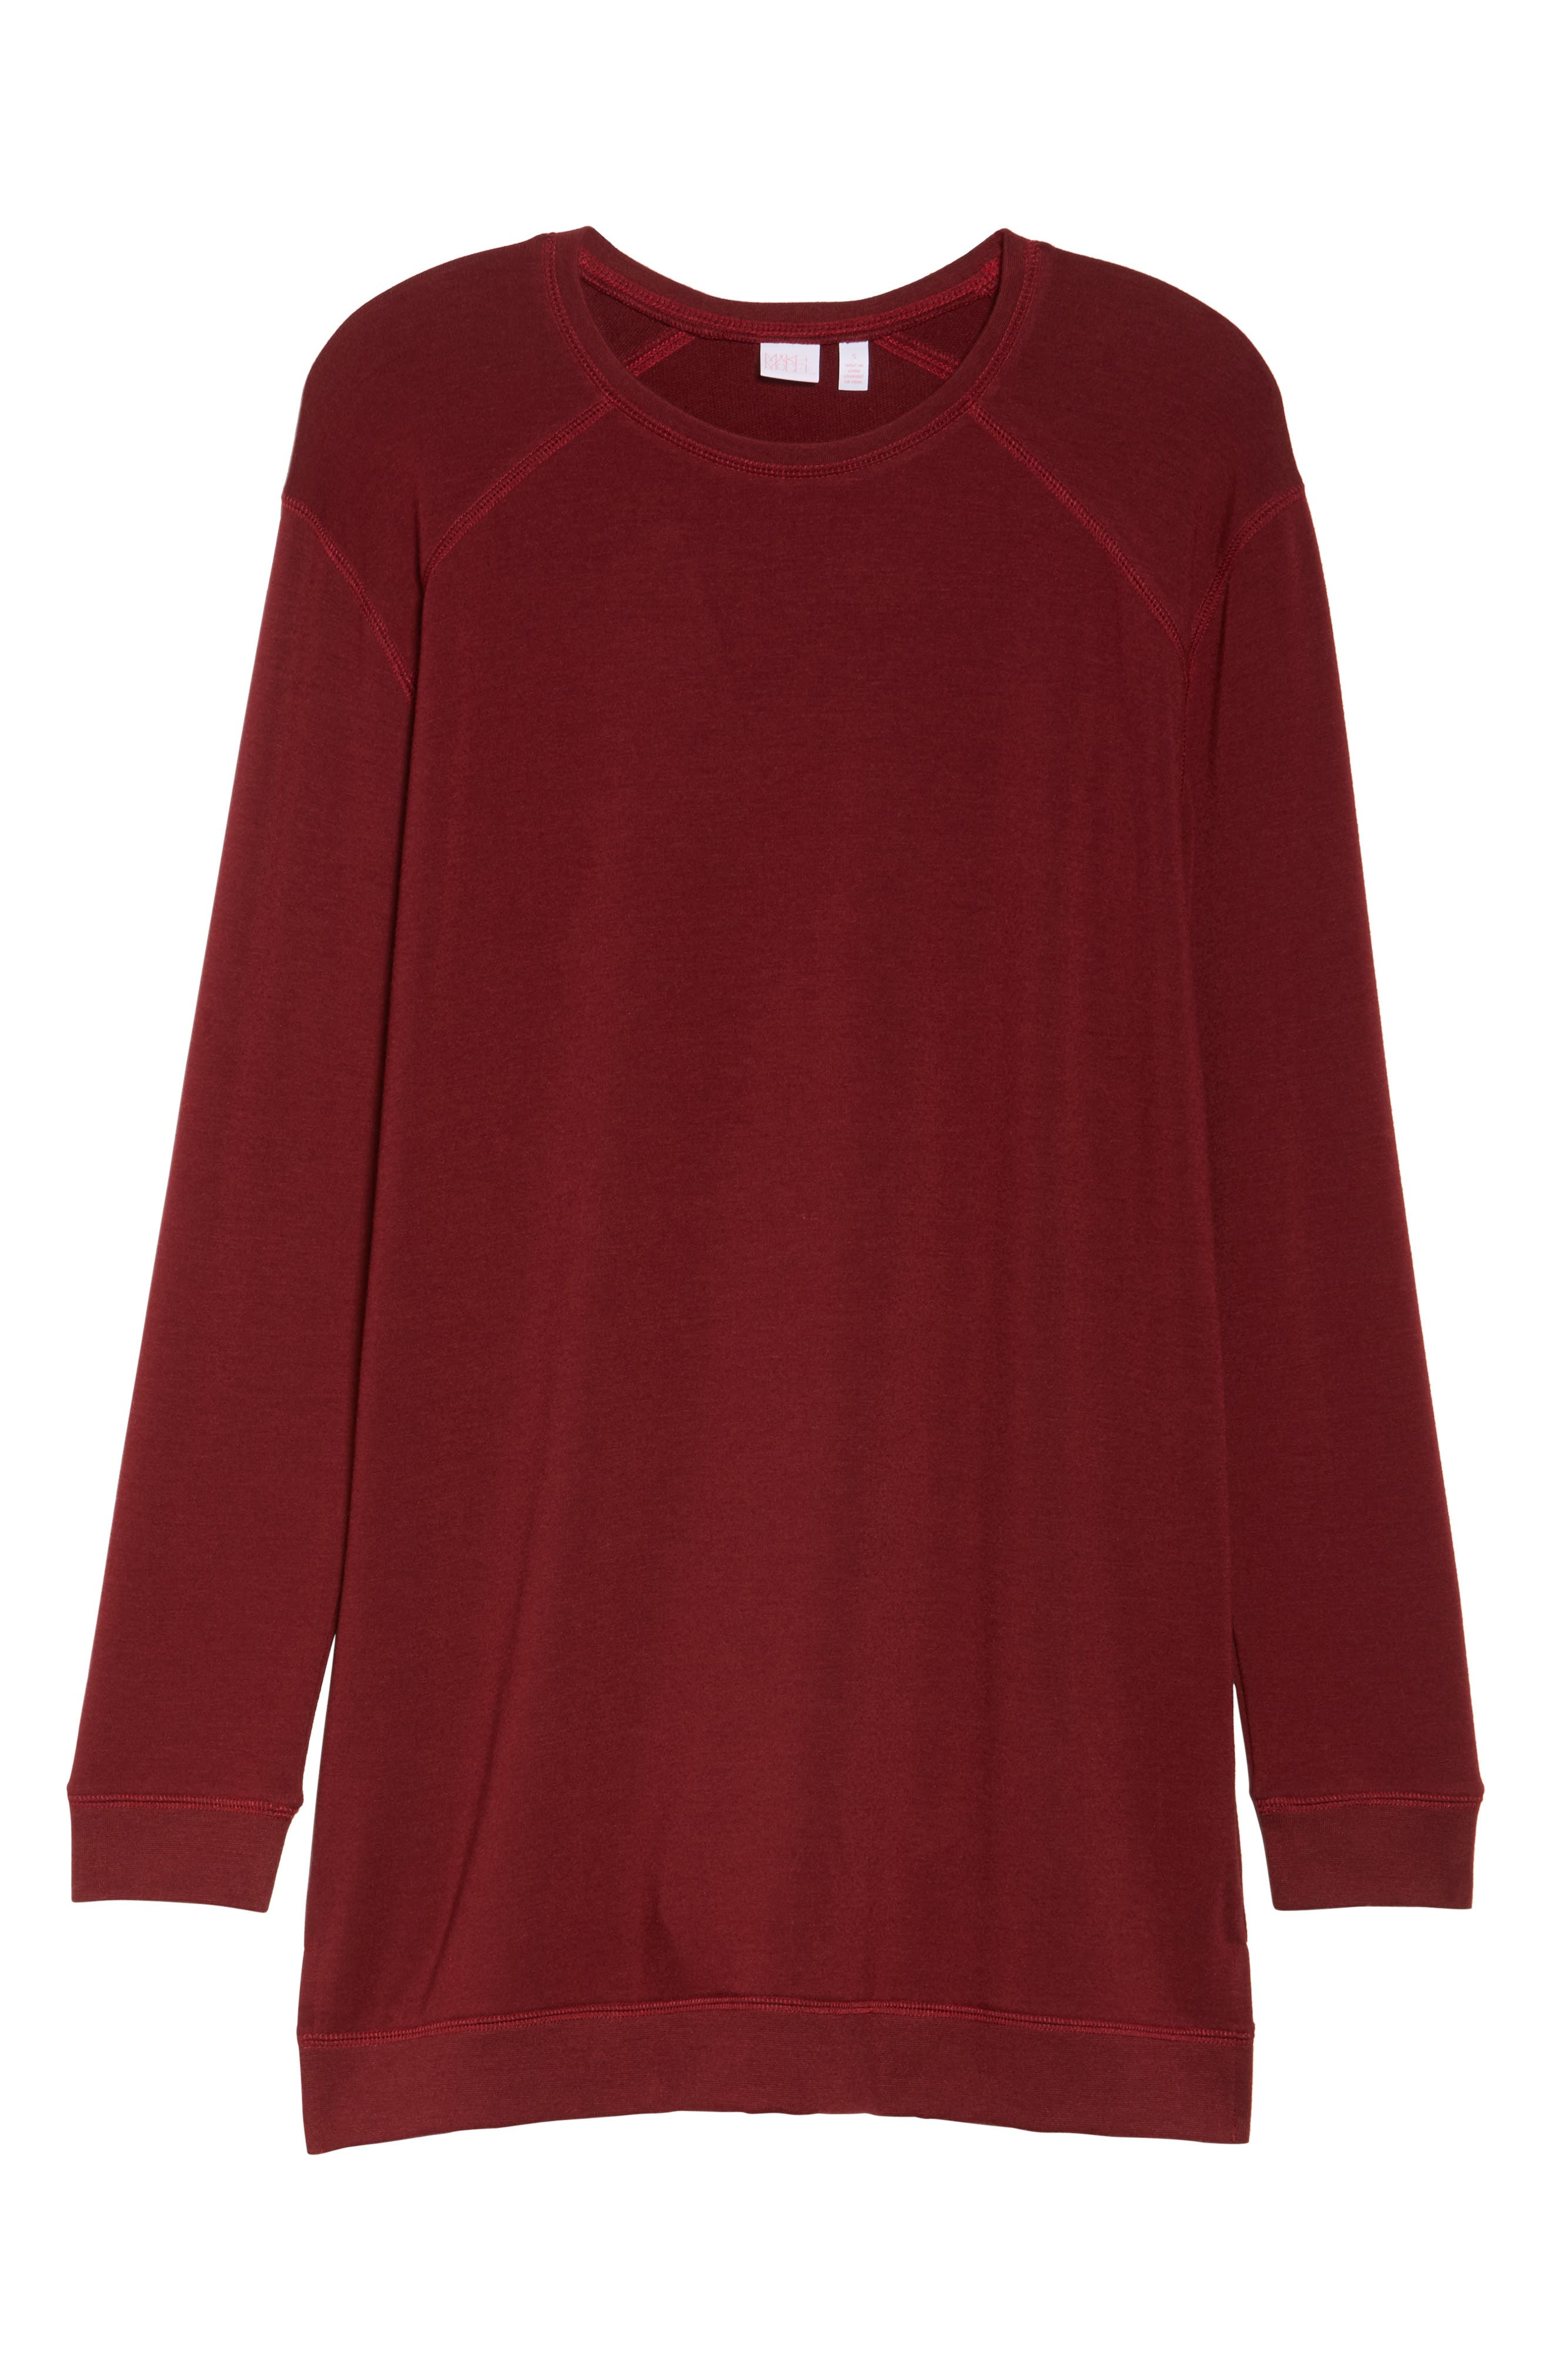 Sleepy Tunic Shirt,                             Alternate thumbnail 17, color,